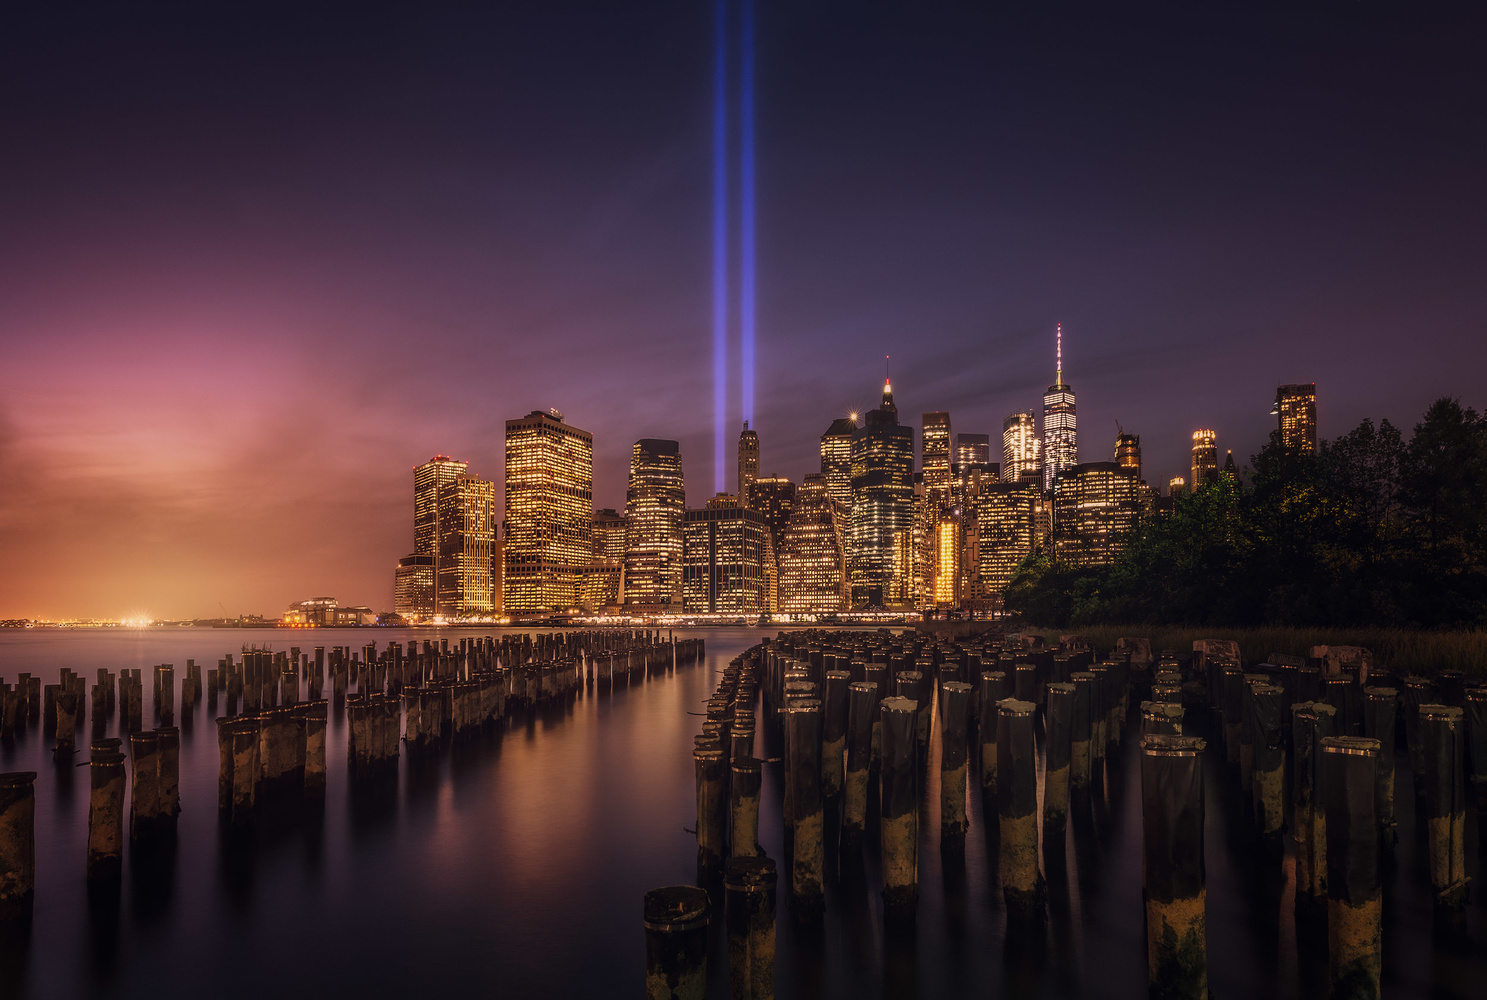 New York Tribute in Lights by Daniel Viñé